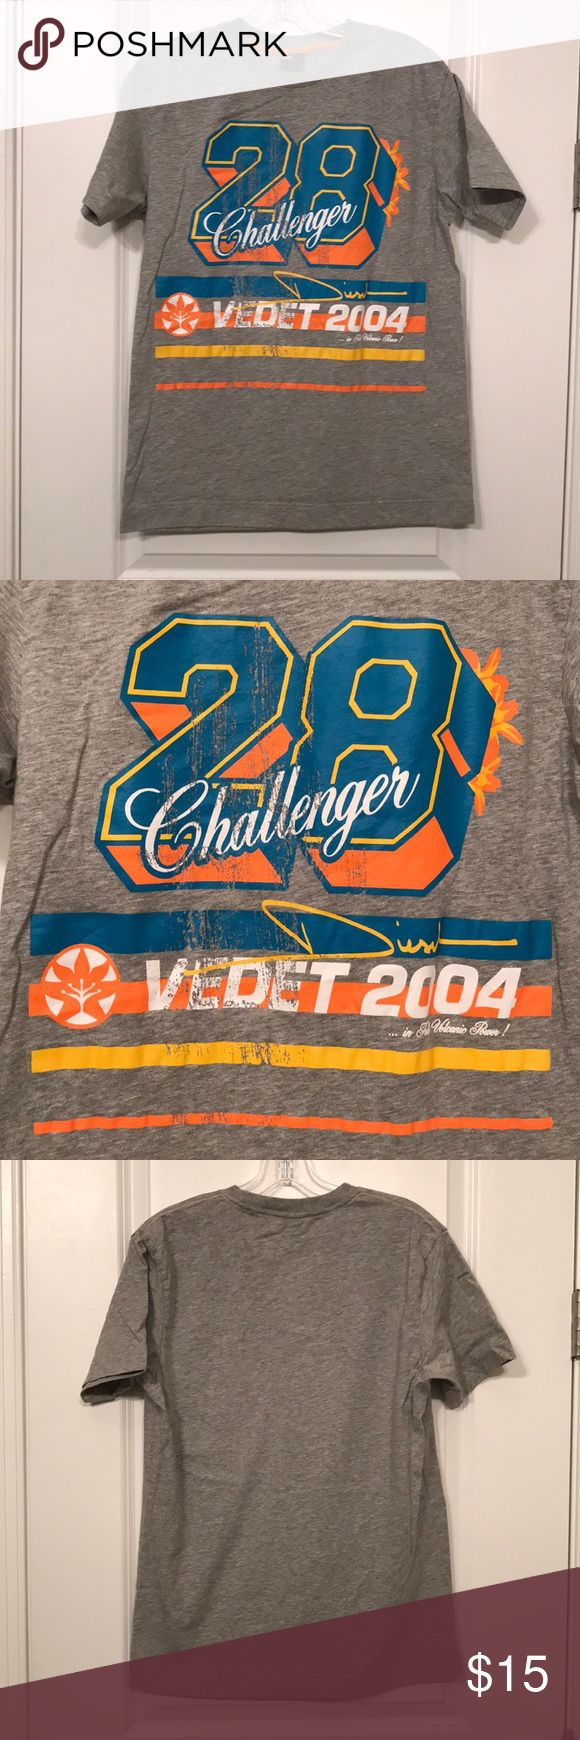 """Men's Diesel T-Shirt Size: XL Color: grey with blue/orange/yellow writing Material: 100% cotton  Length: 27.5"""" Width: 20"""" armpit to armpit Good condition Diesel Shirts Tees - Short Sleeve"""